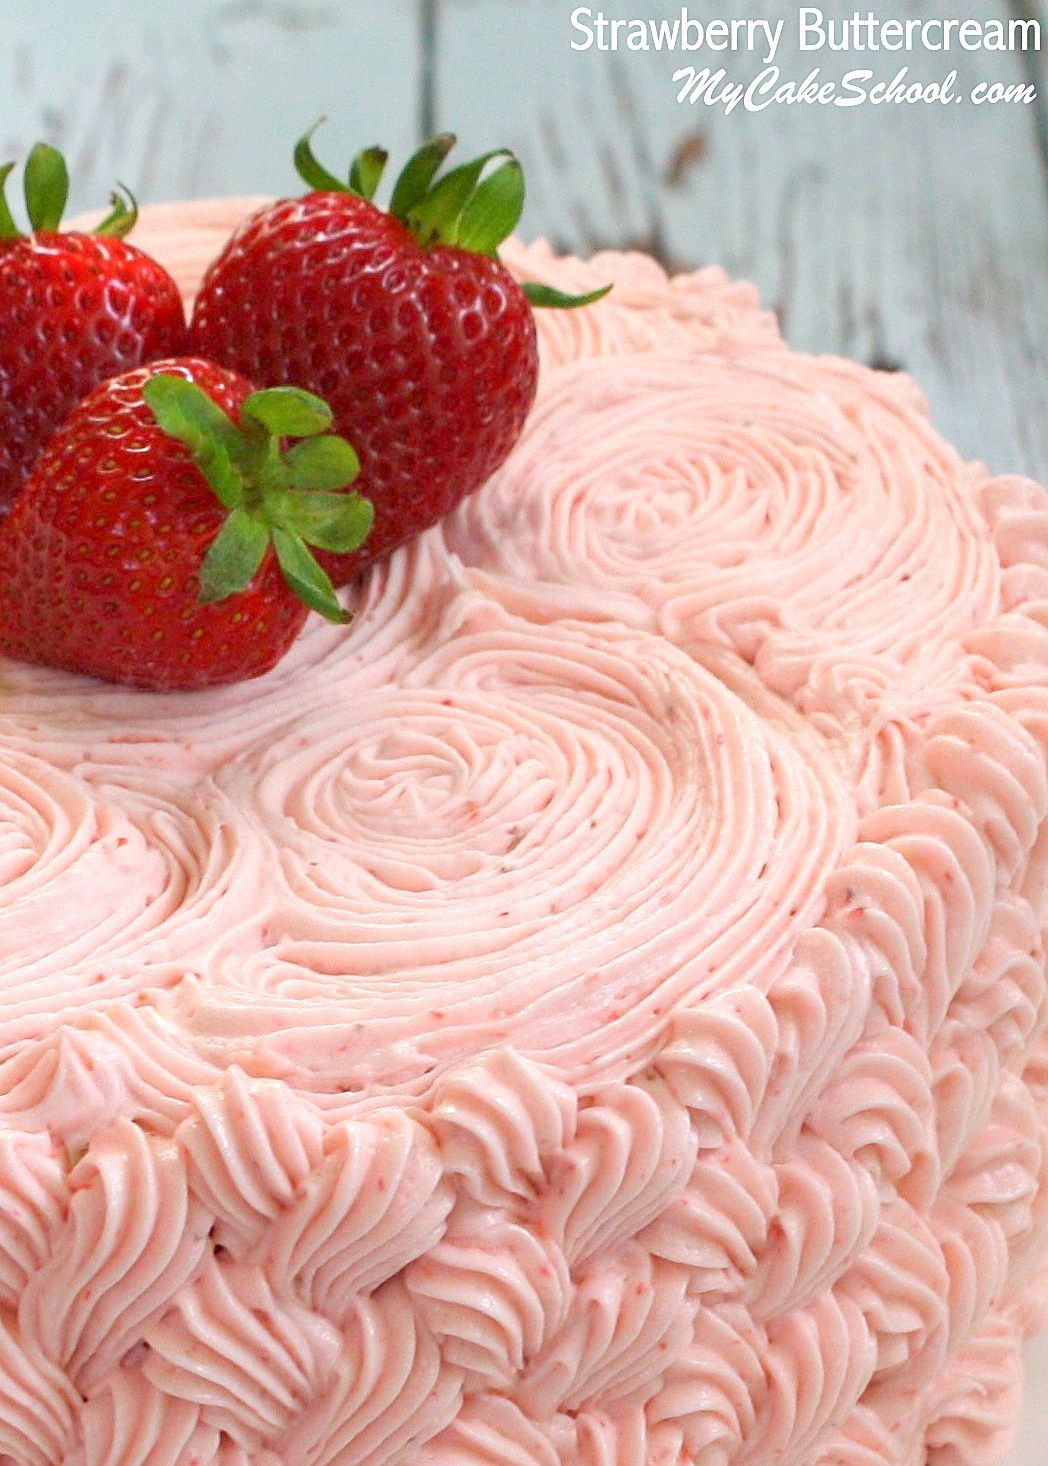 Strawberry Buttercream Recipe Strawberry buttercream Frostings